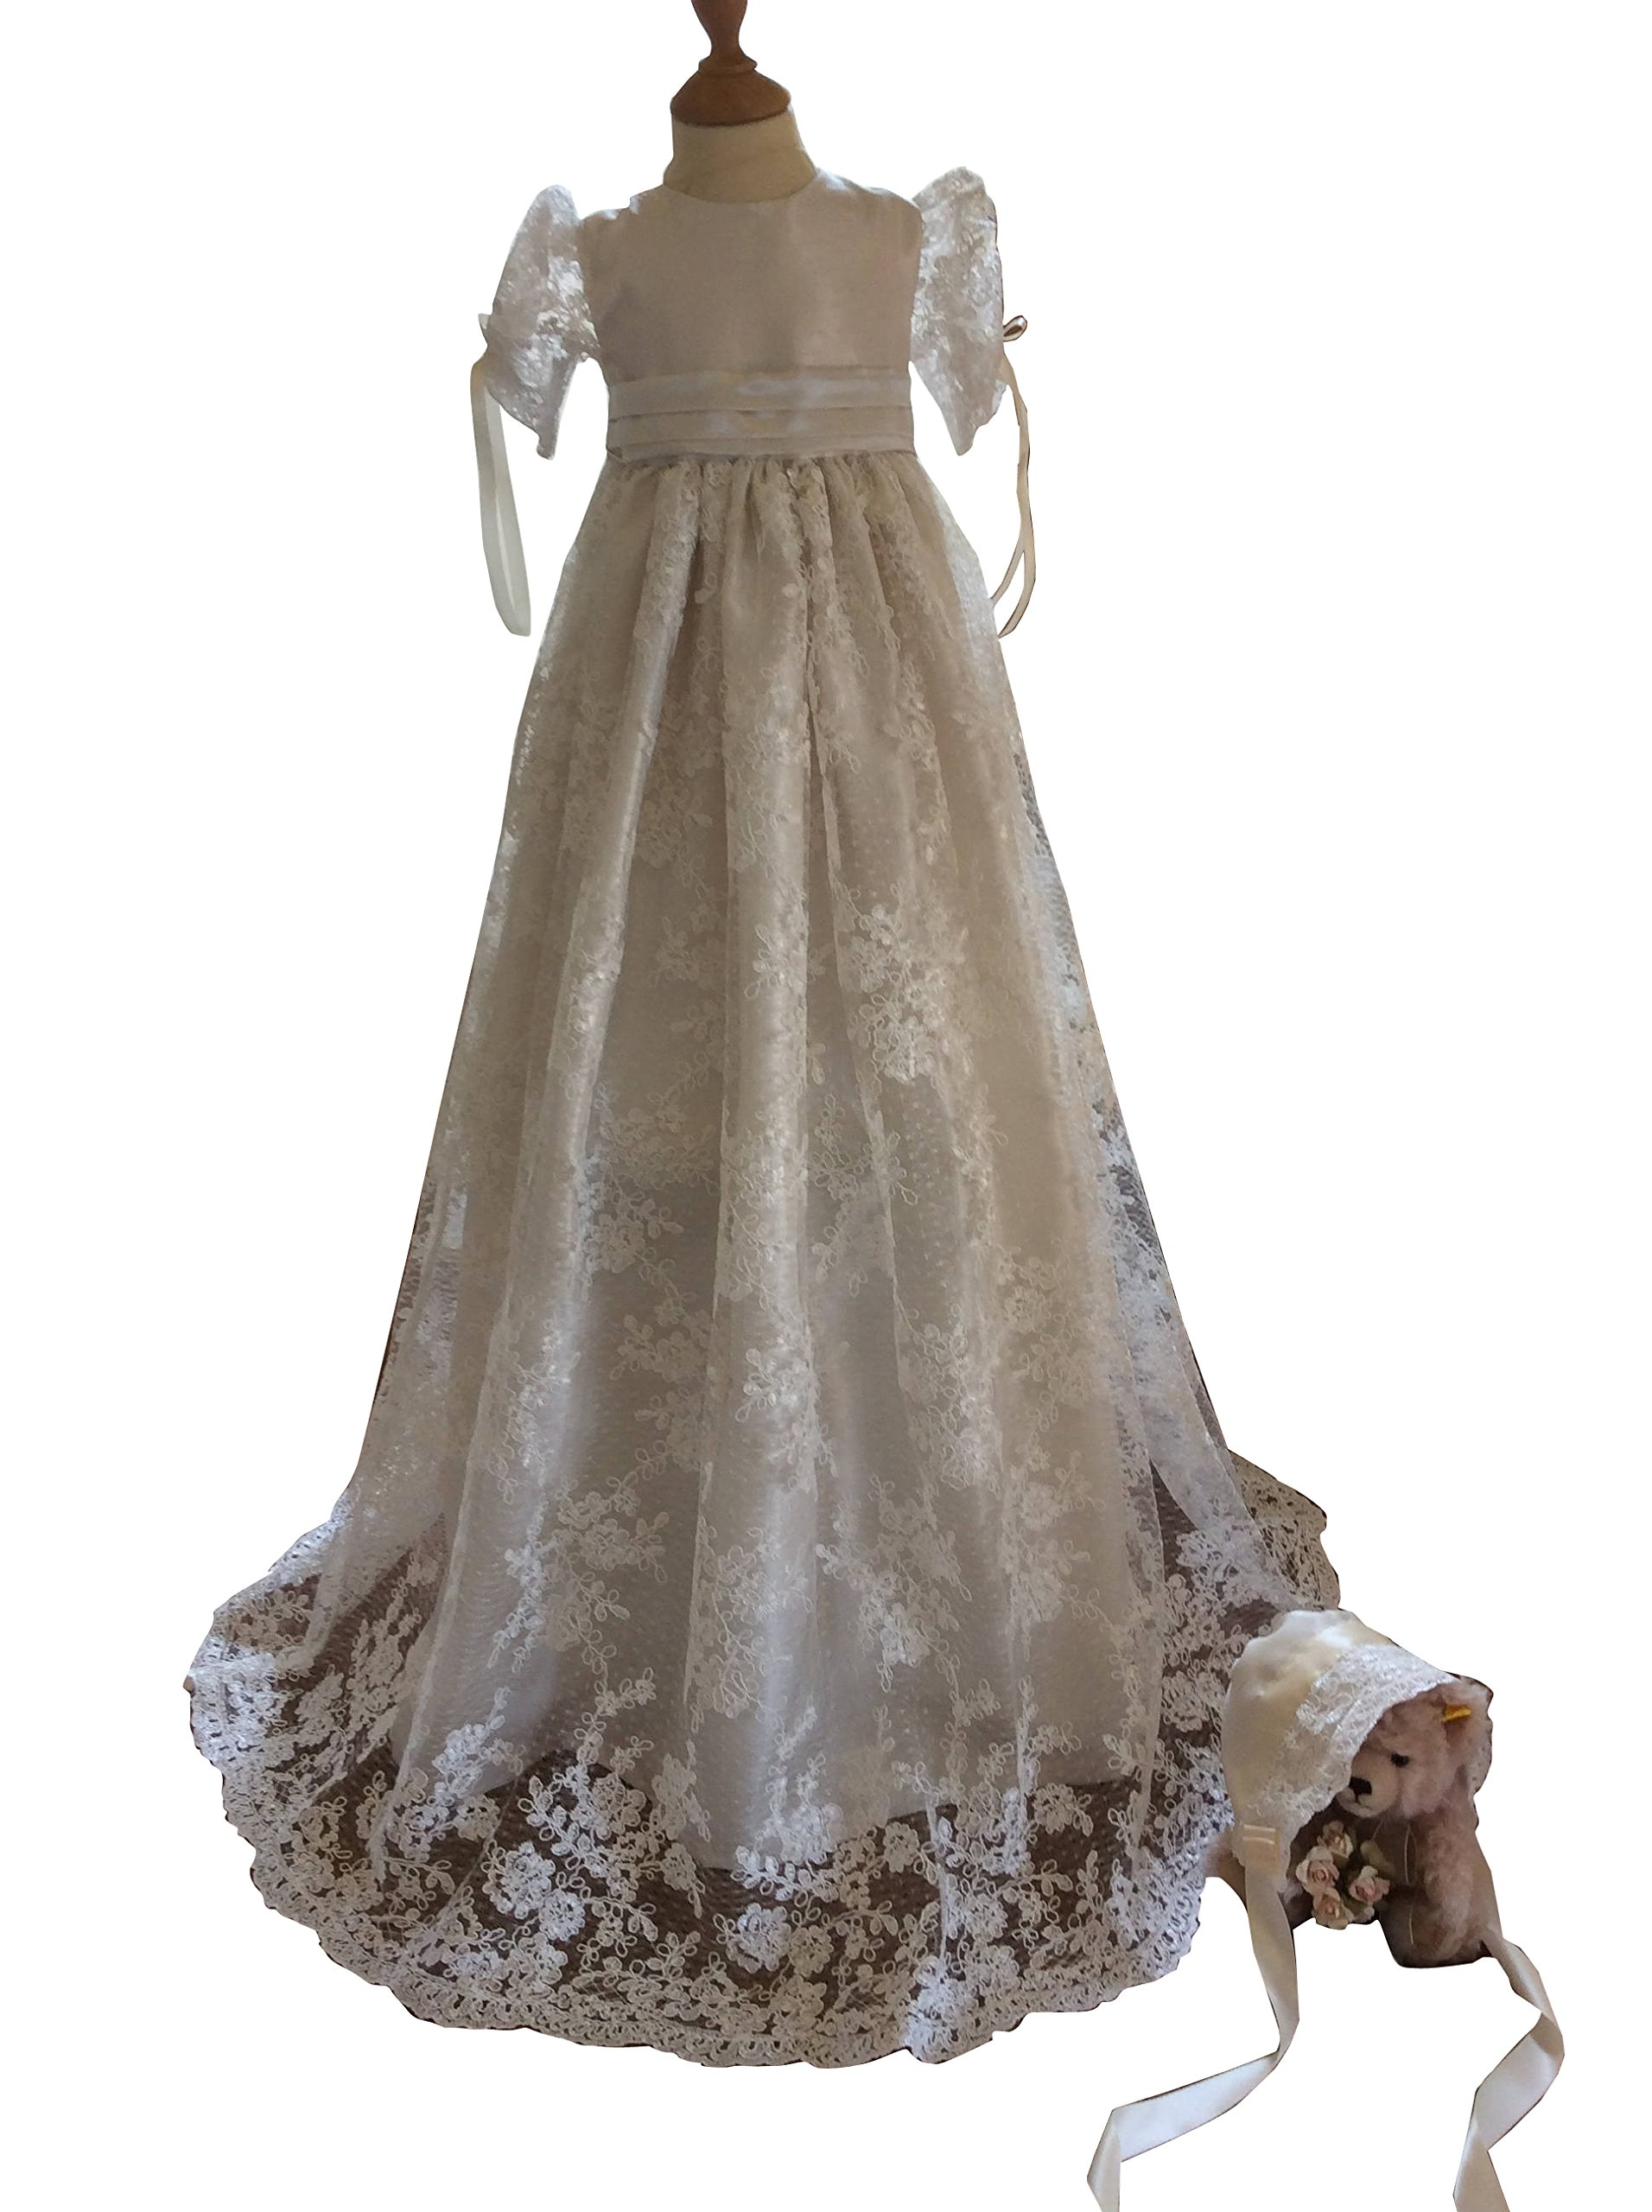 kelaixiang White/Ivory Lace Christening Dresses For Girls Baptism Gowns With Bonnet